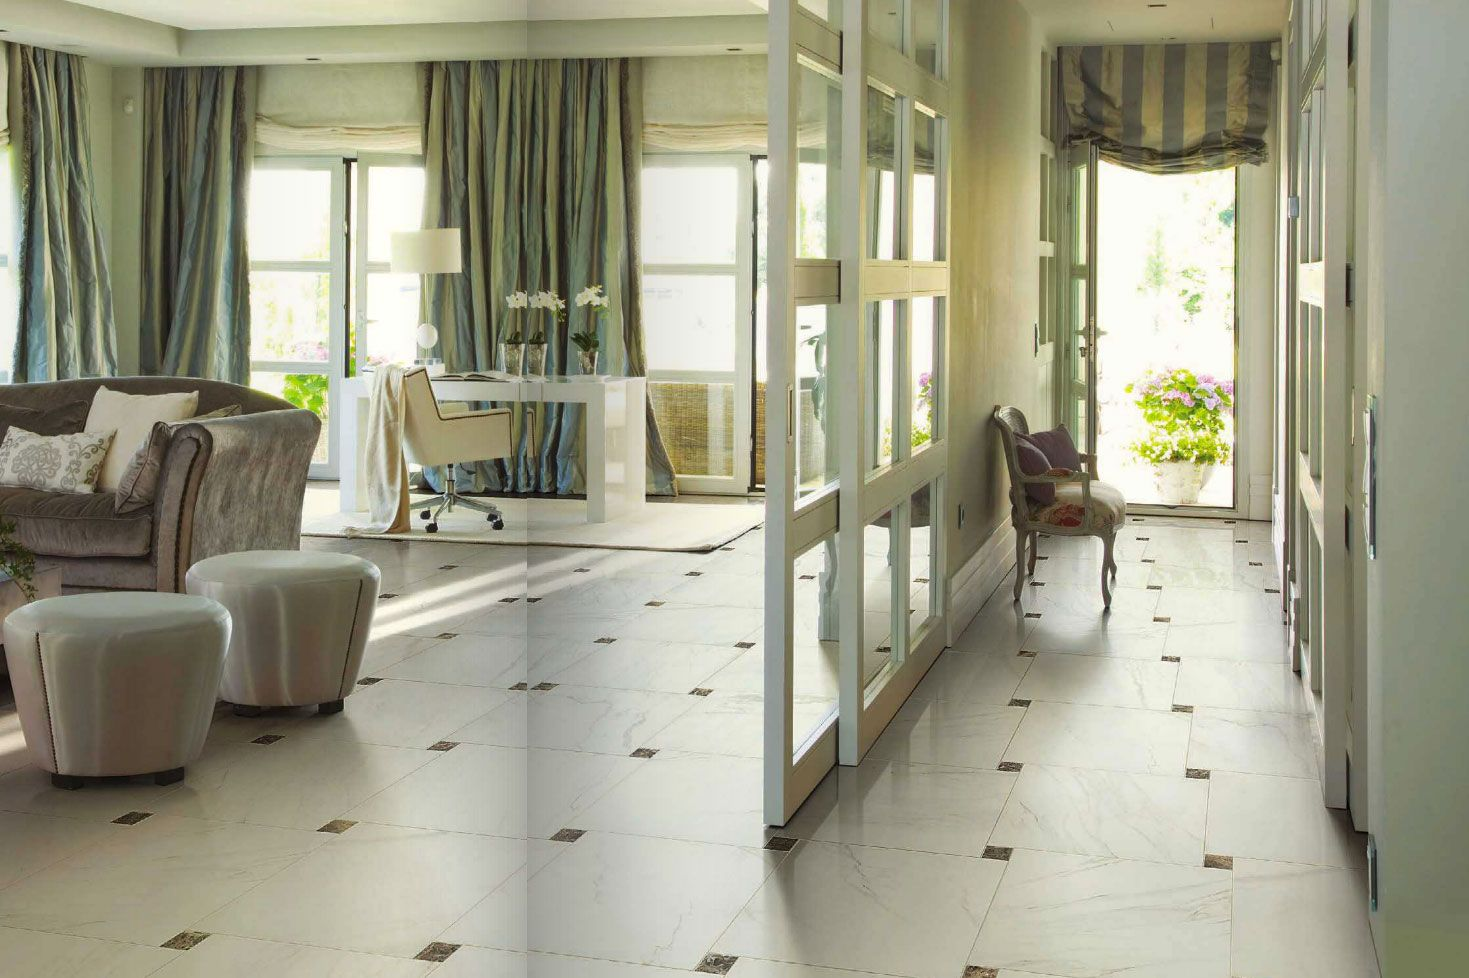 Vintage By Fine In Calacatta Available In 14x14 Matte Floor Tile 10x22 Polished Wall Tile 2x2 Matte Mosaic And 3x10 Style Tile Porcelain Flooring Flooring